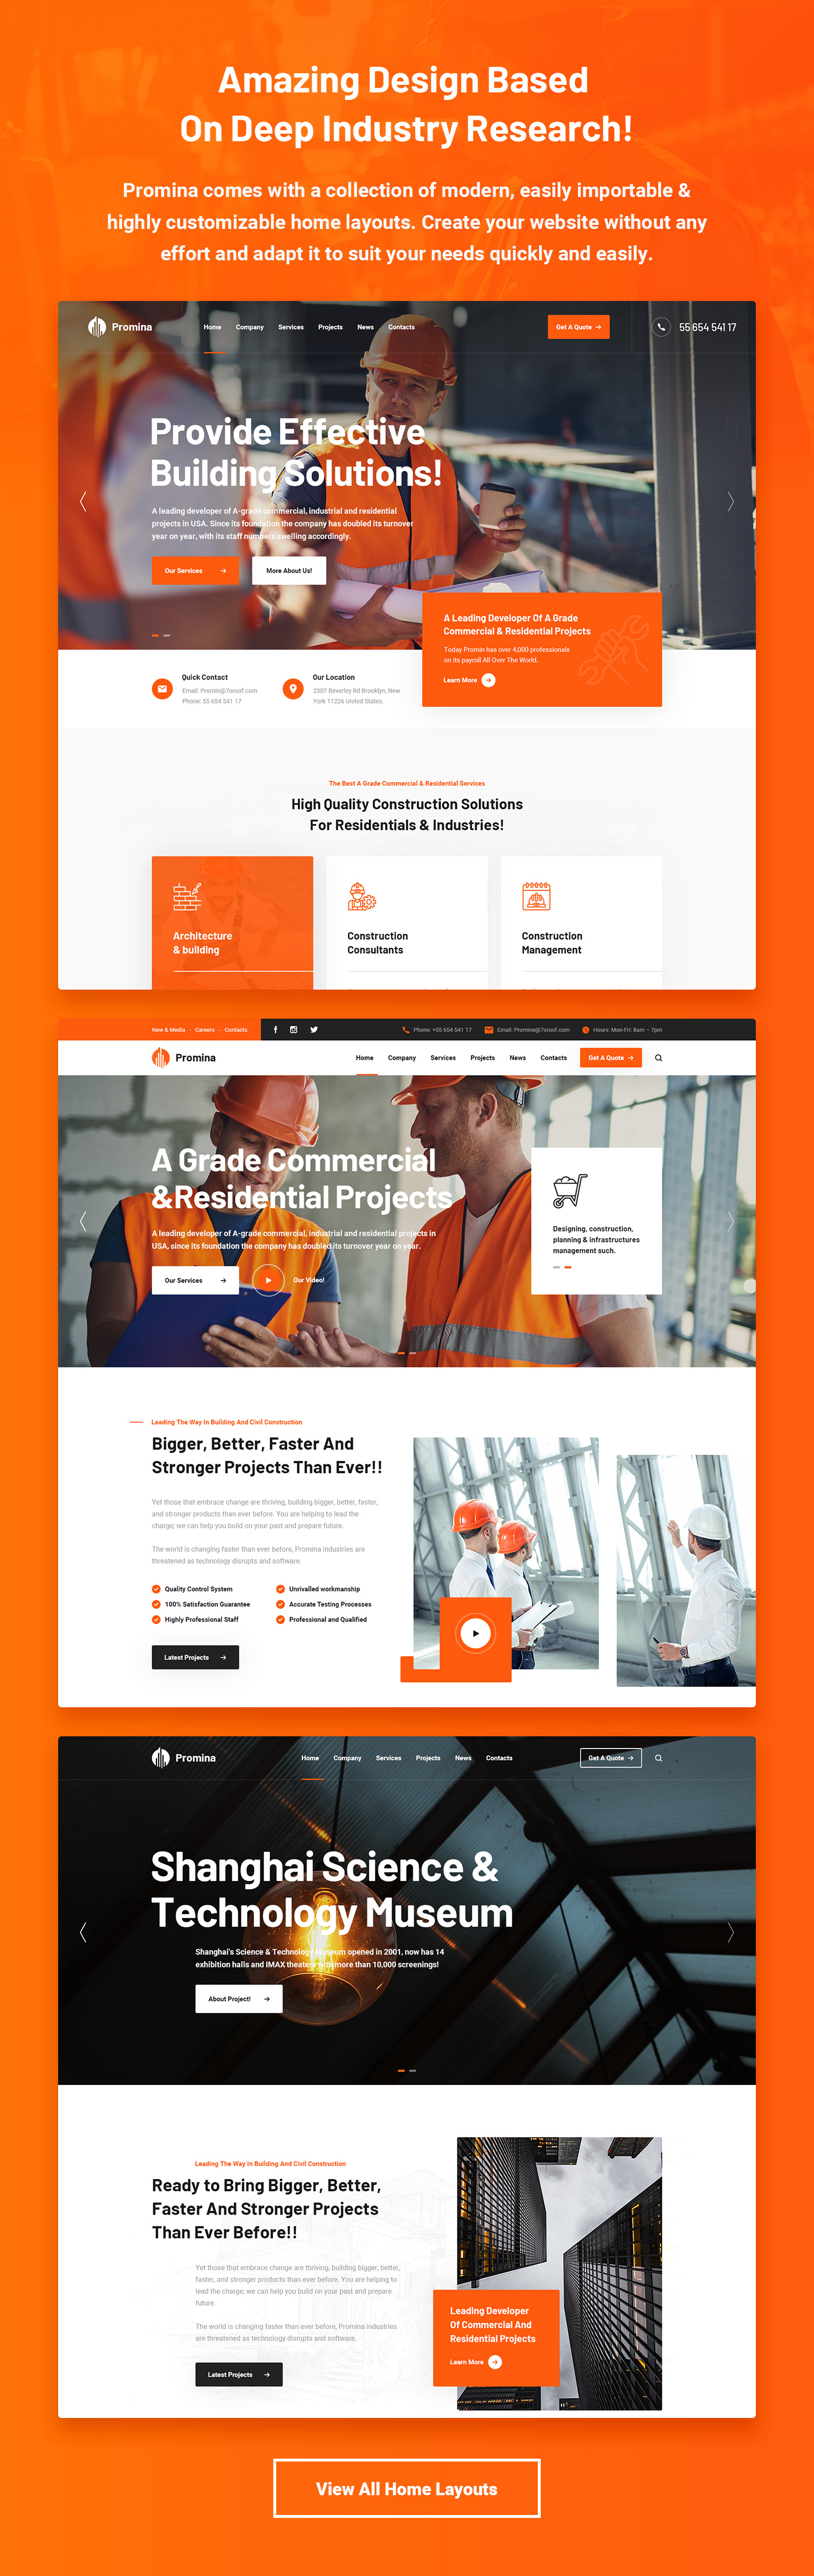 Promina - Construction Building & Architecture Business WordPress Theme - 6